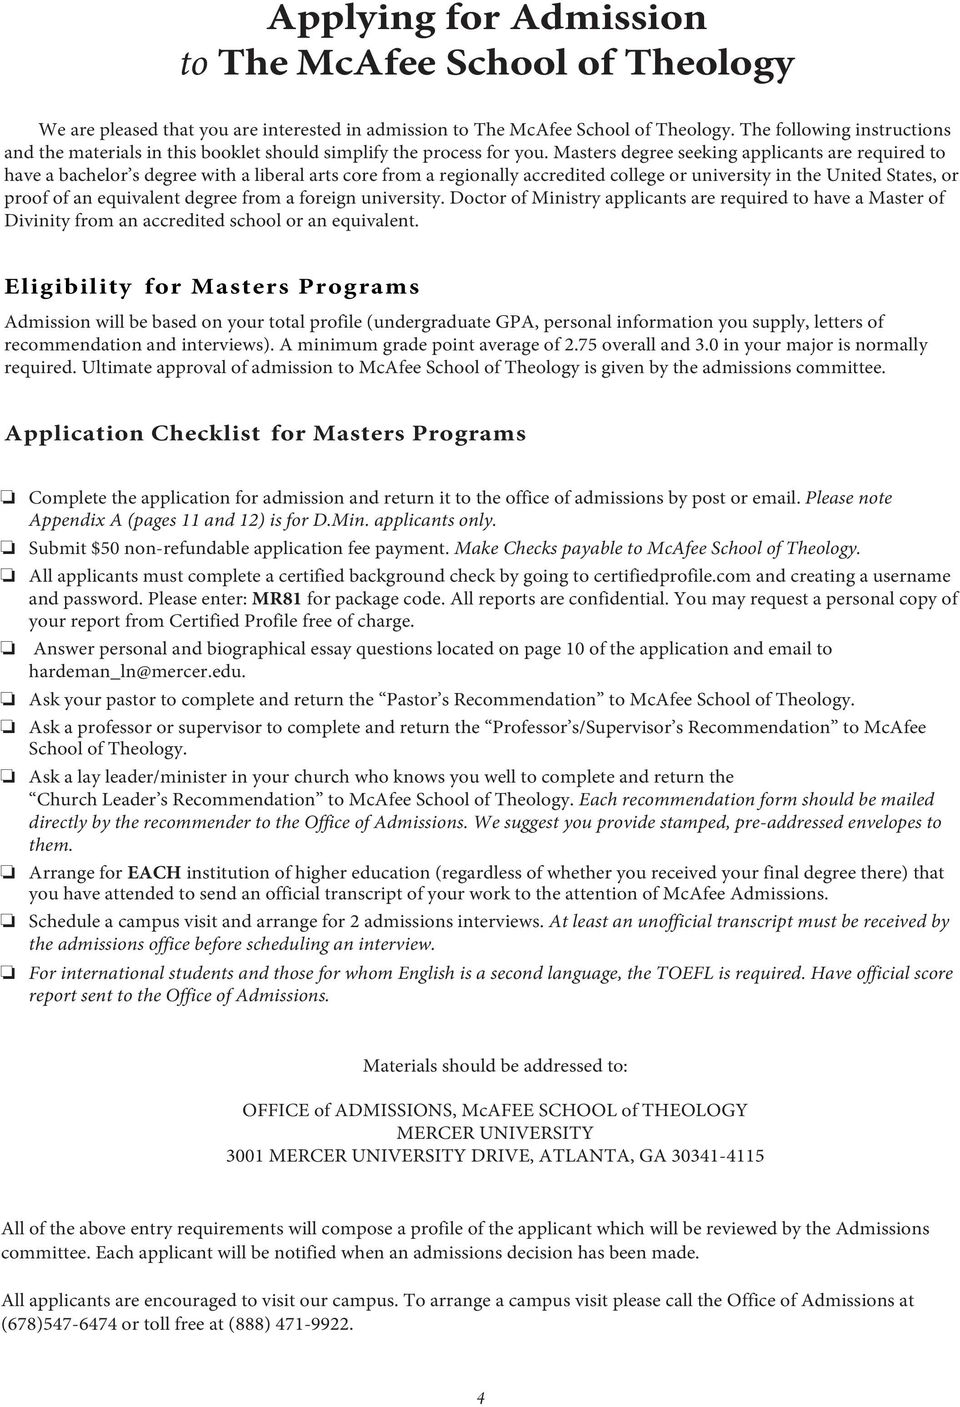 Masters degree seeking applicants are required to have a bachelor s degree with a liberal arts core from a regionally accredited college or university in the United States, or proof of an equivalent